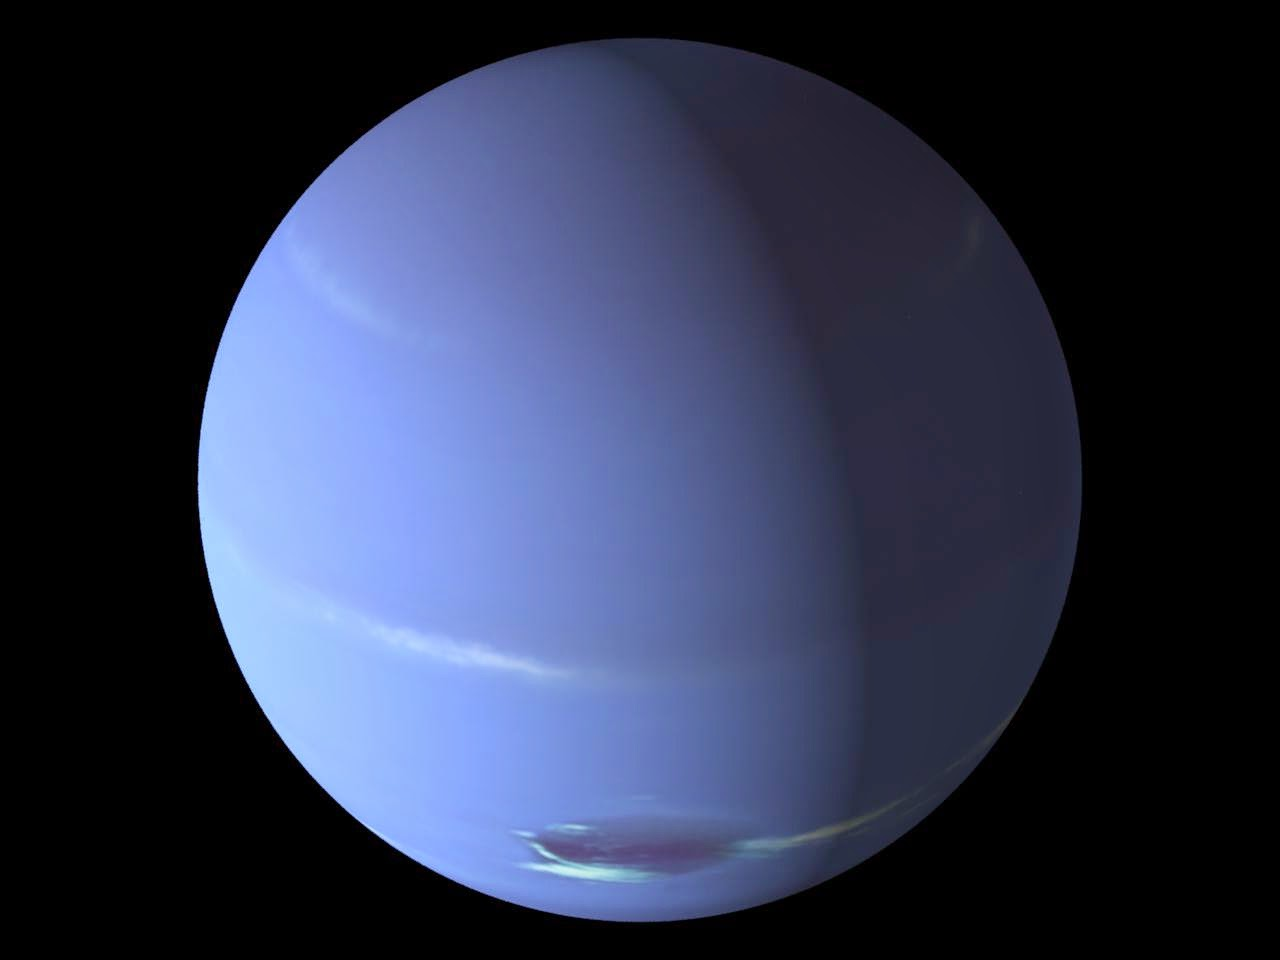 Beyond Earthly Skies: Neso - A Far-Flung Moon of Neptune